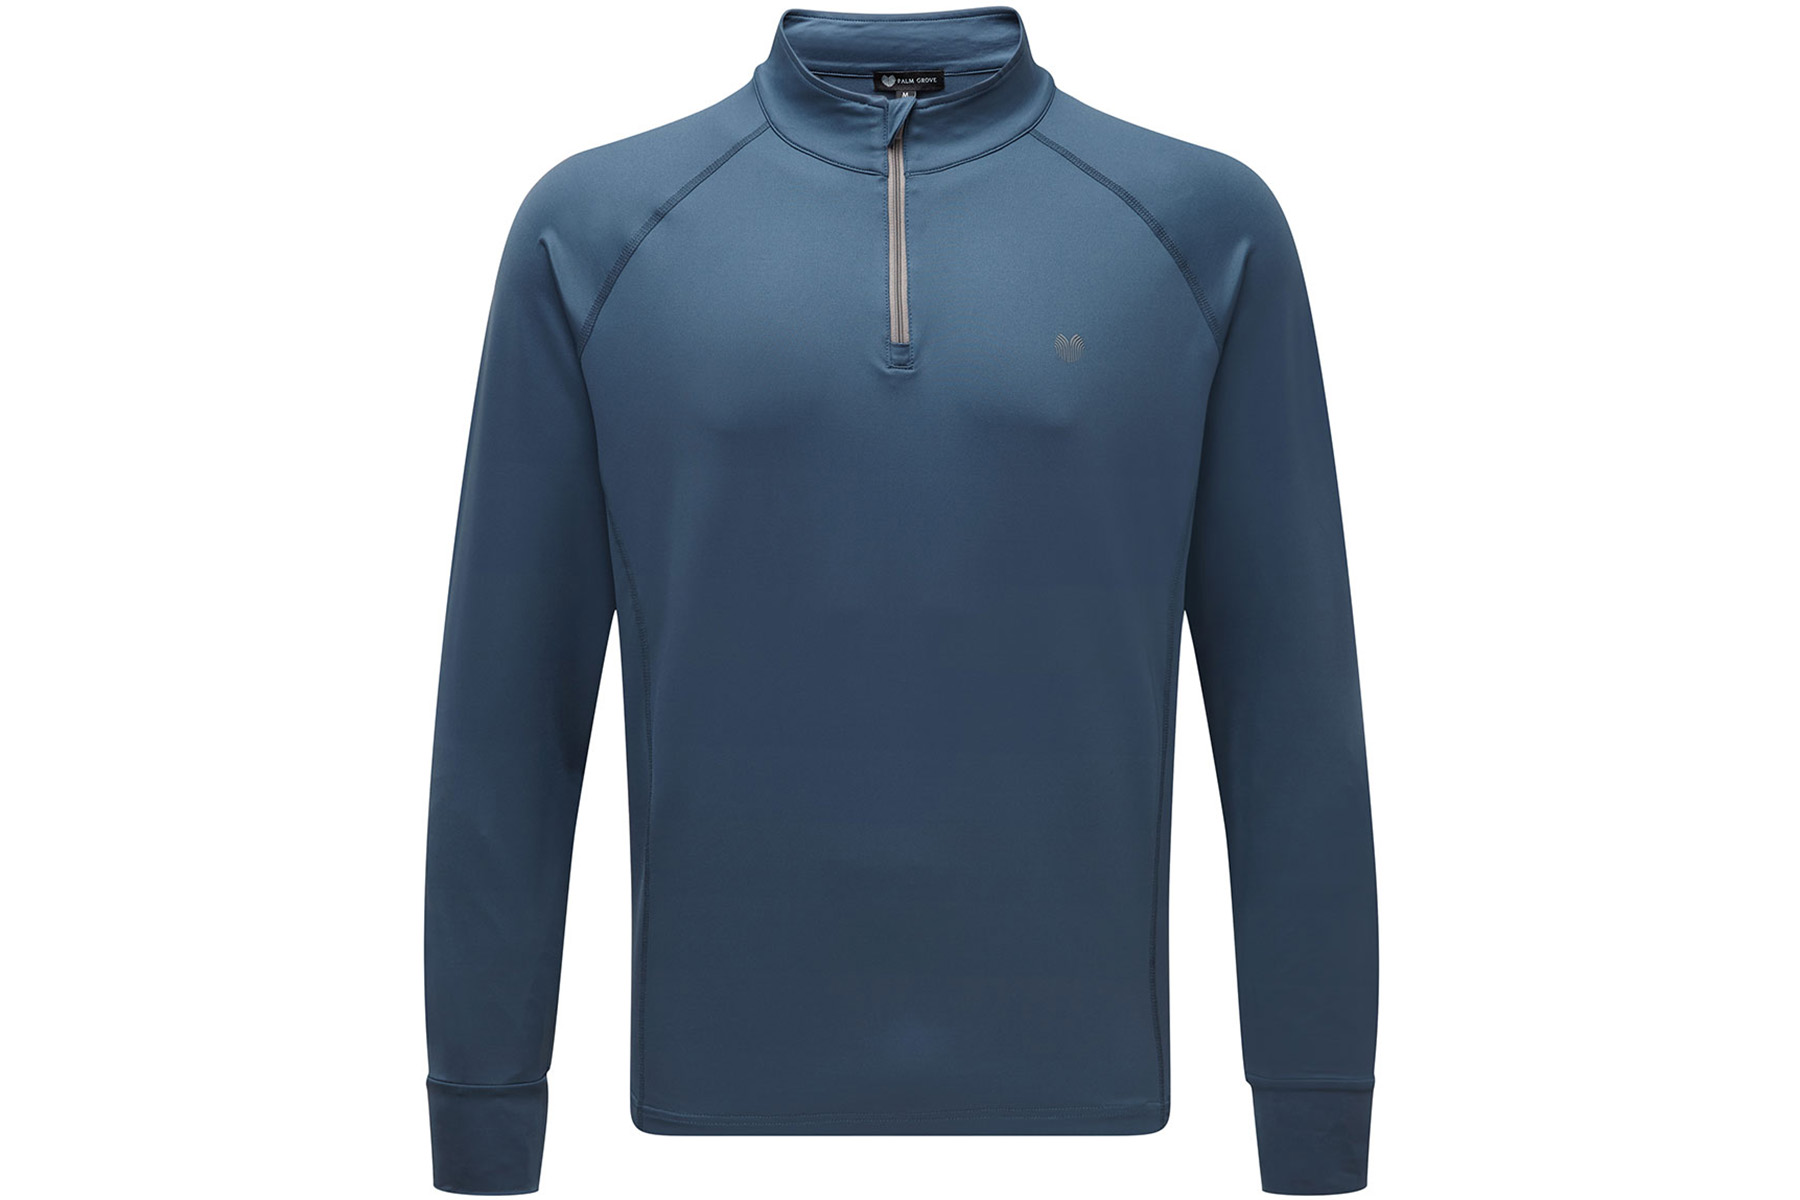 Palm grove panelled 1 4 zip windshirt from american golf for Housse zip collection captur